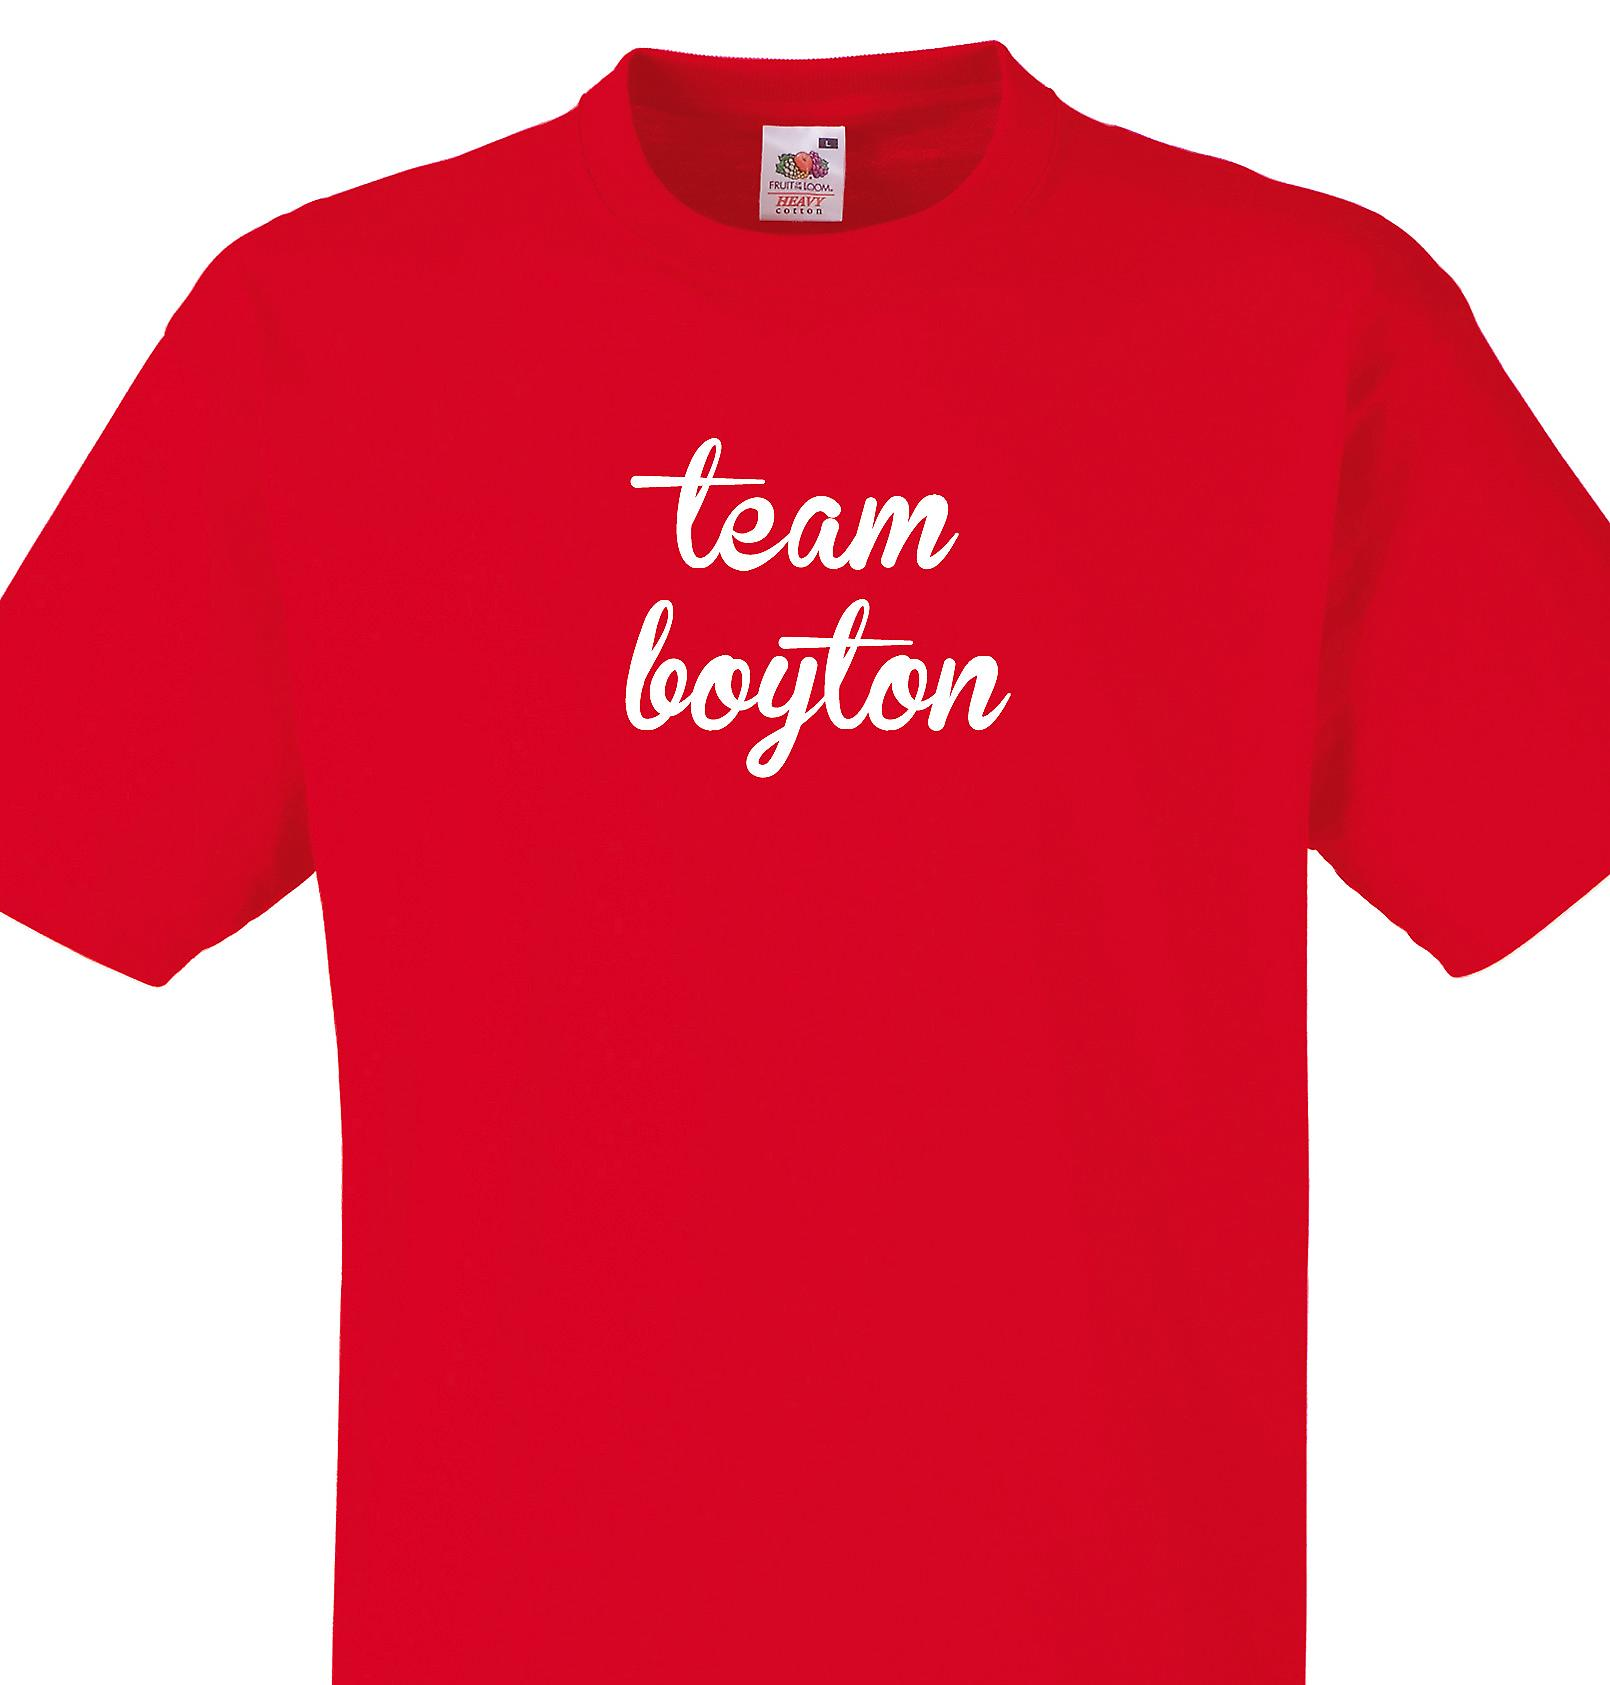 Team Boyton Red T shirt